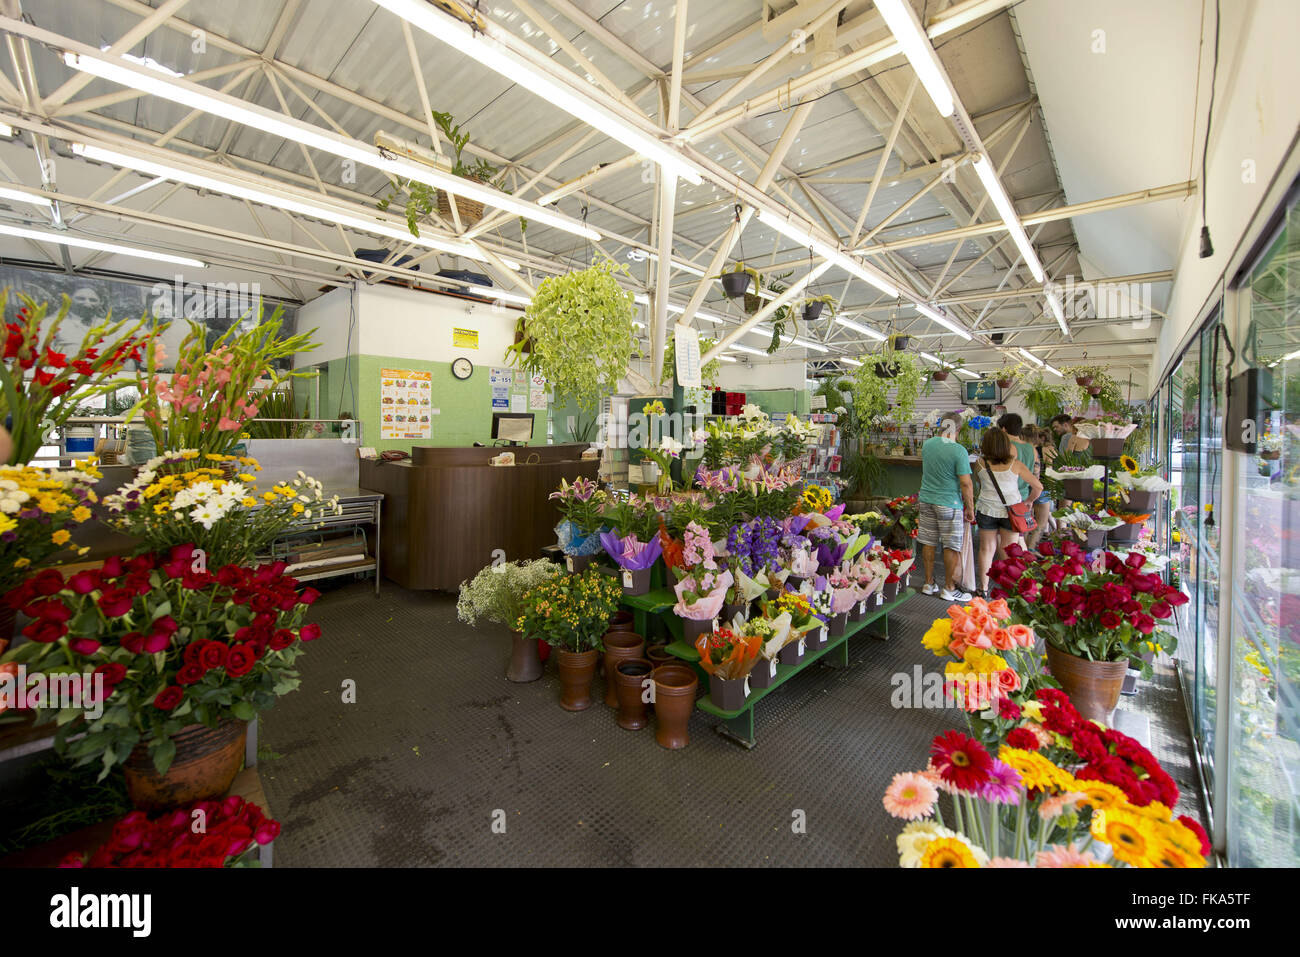 Floristry the Arouche Square - Stock Image